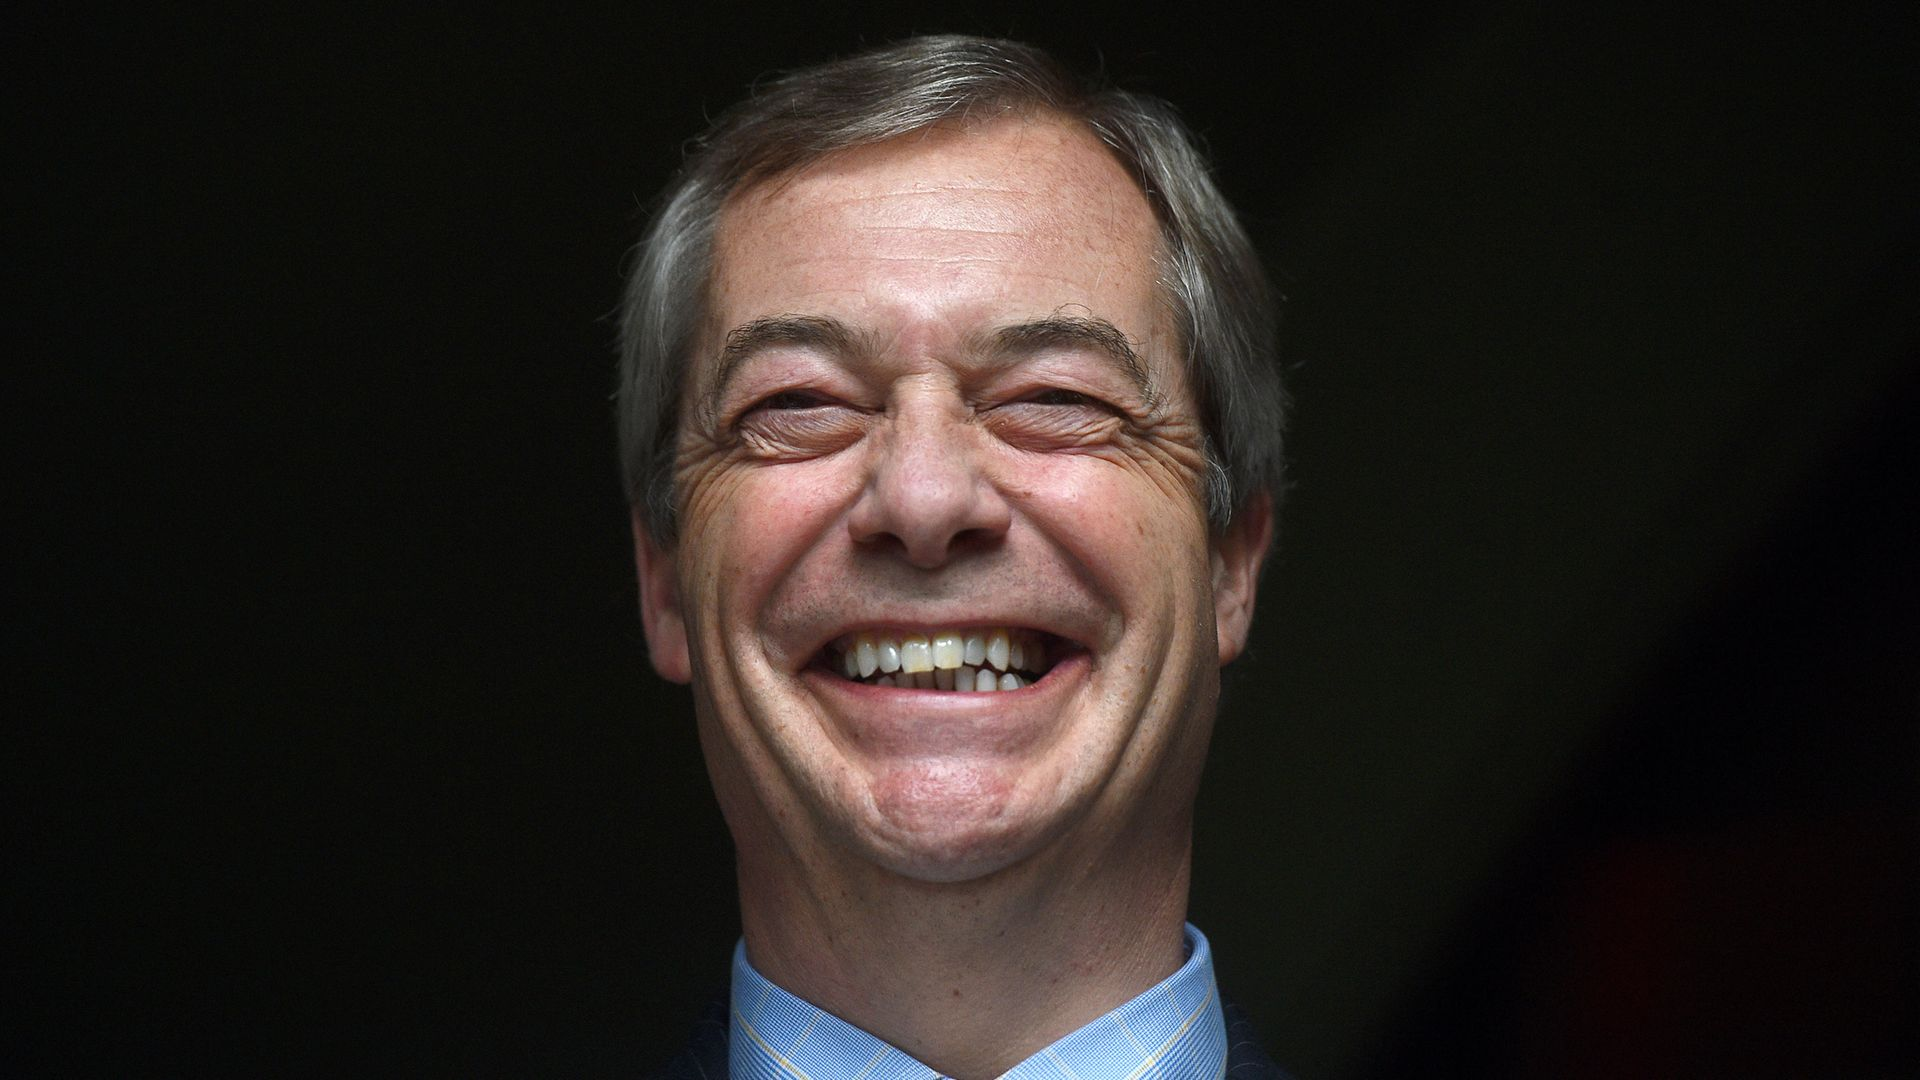 Nigel Farage has pledged to bet £10,000 on Donald Trump winning a second presidential term - Credit: PA